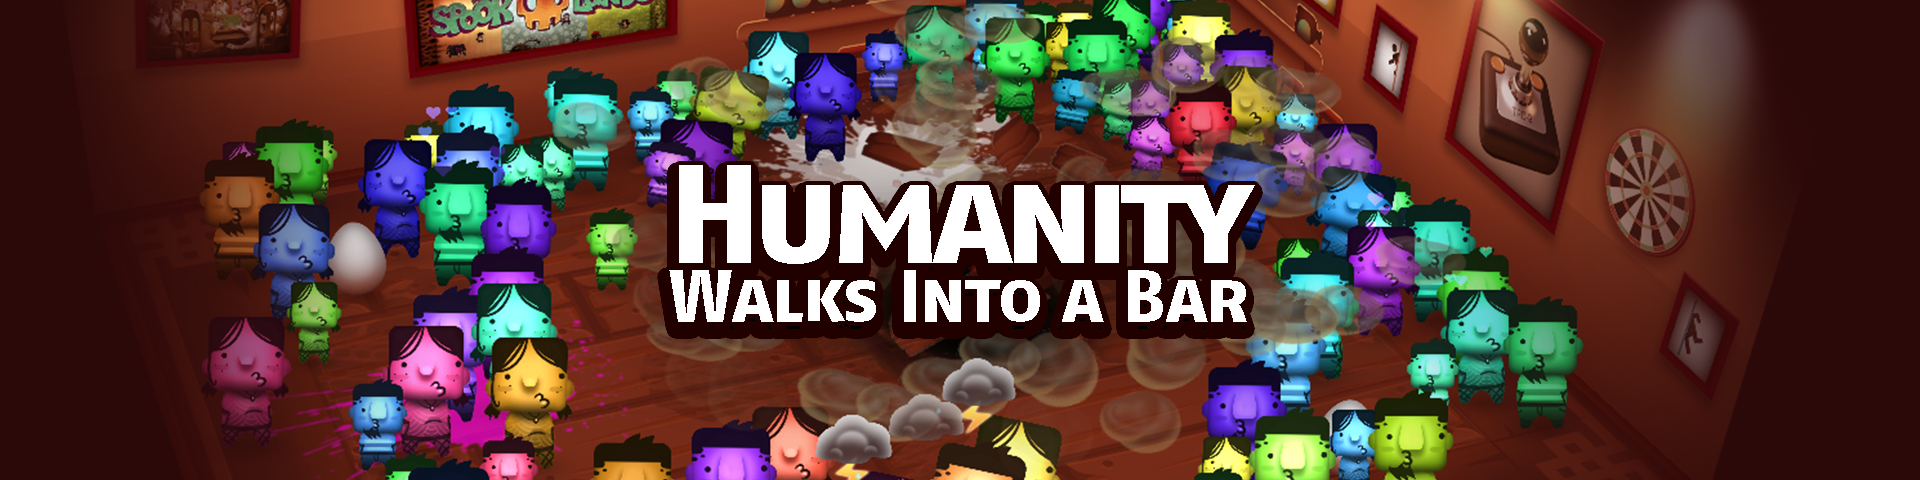 Humanity Walks Into a Bar